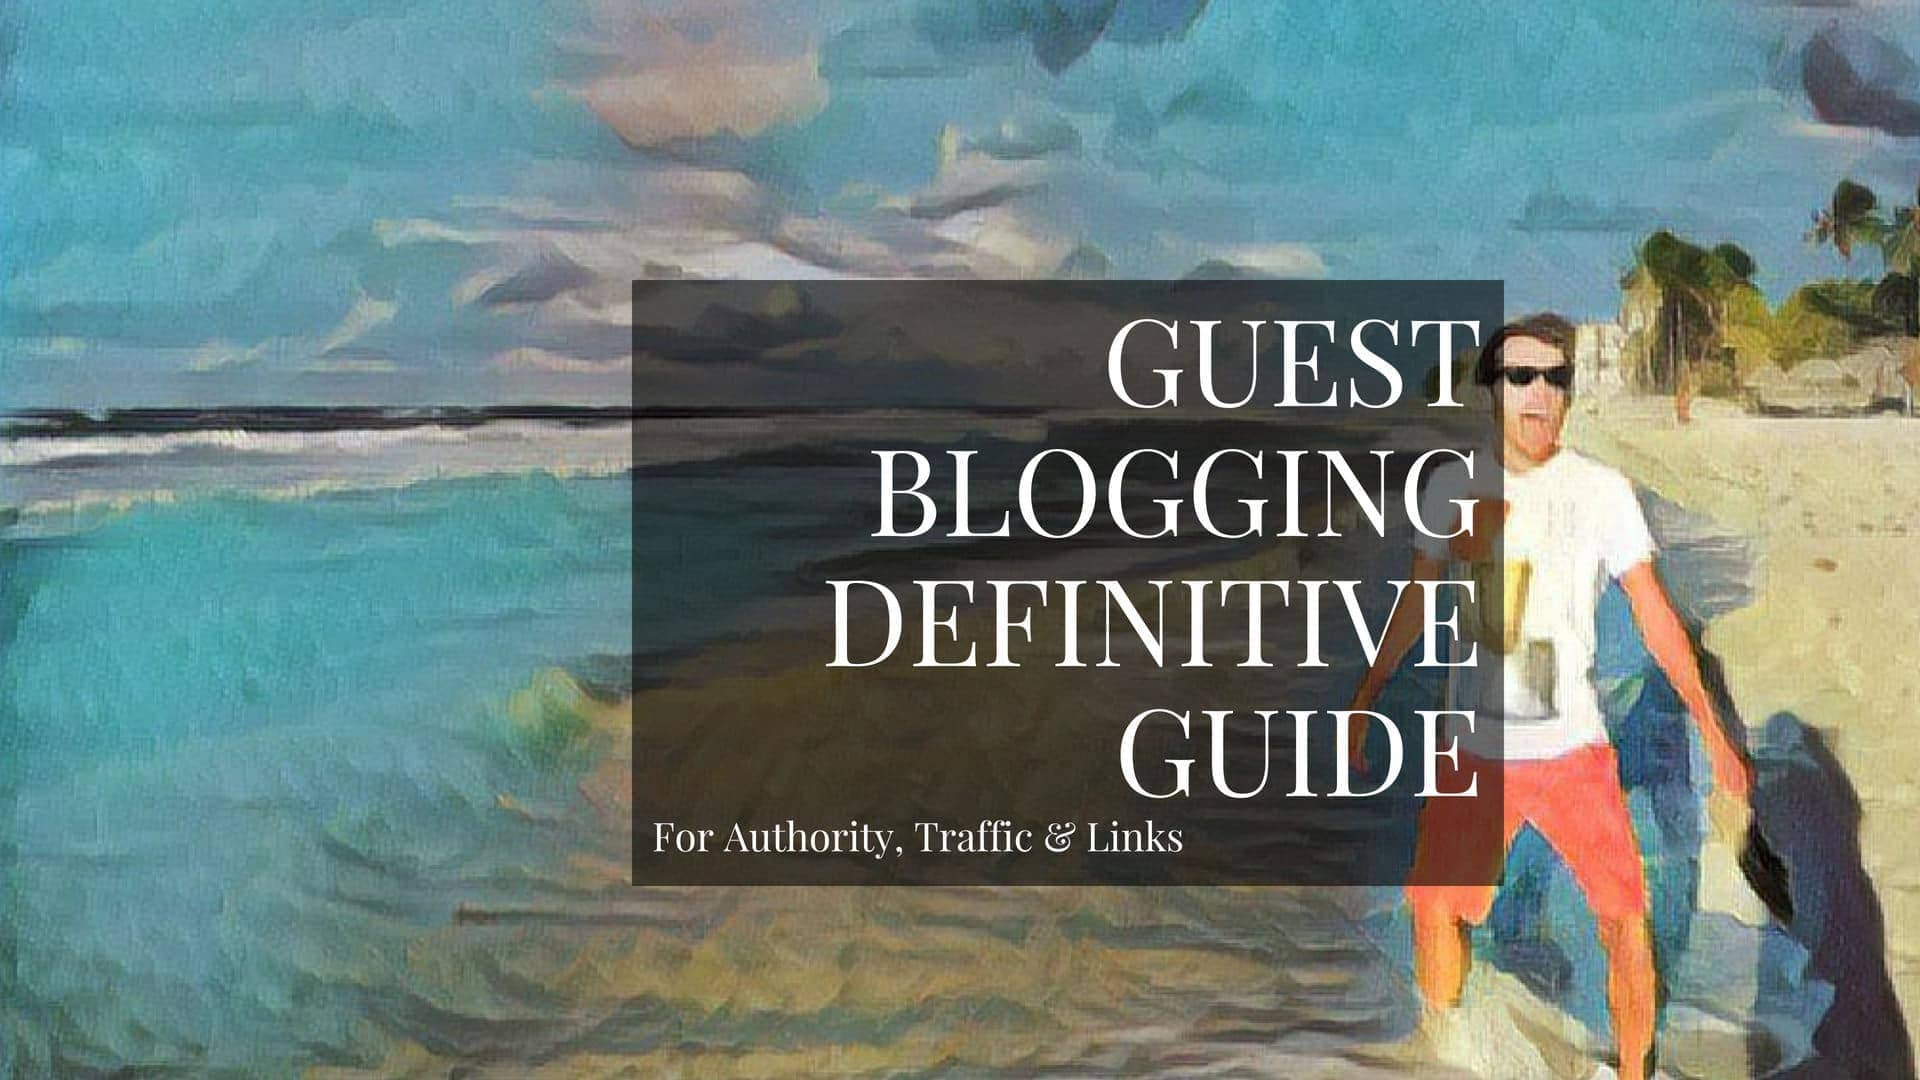 Guest Blogging In 2018: The Definitive Guide